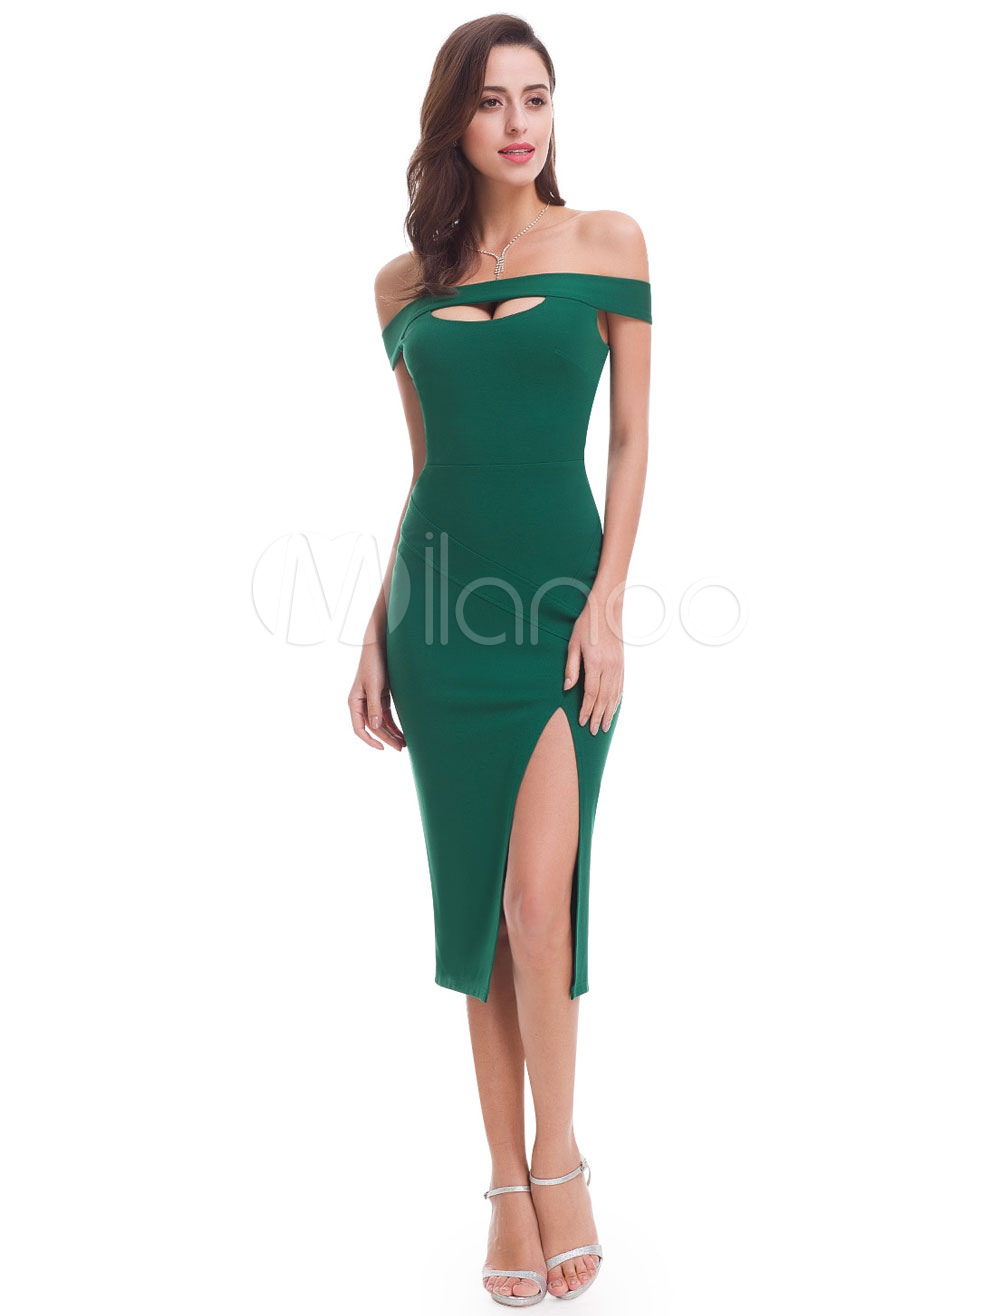 Buy Sheath Evening Dress Sexy High Split Cocktail Dress Off The Shoulder Cut Out Tea Length Party Dresses for $96.79 in Milanoo store